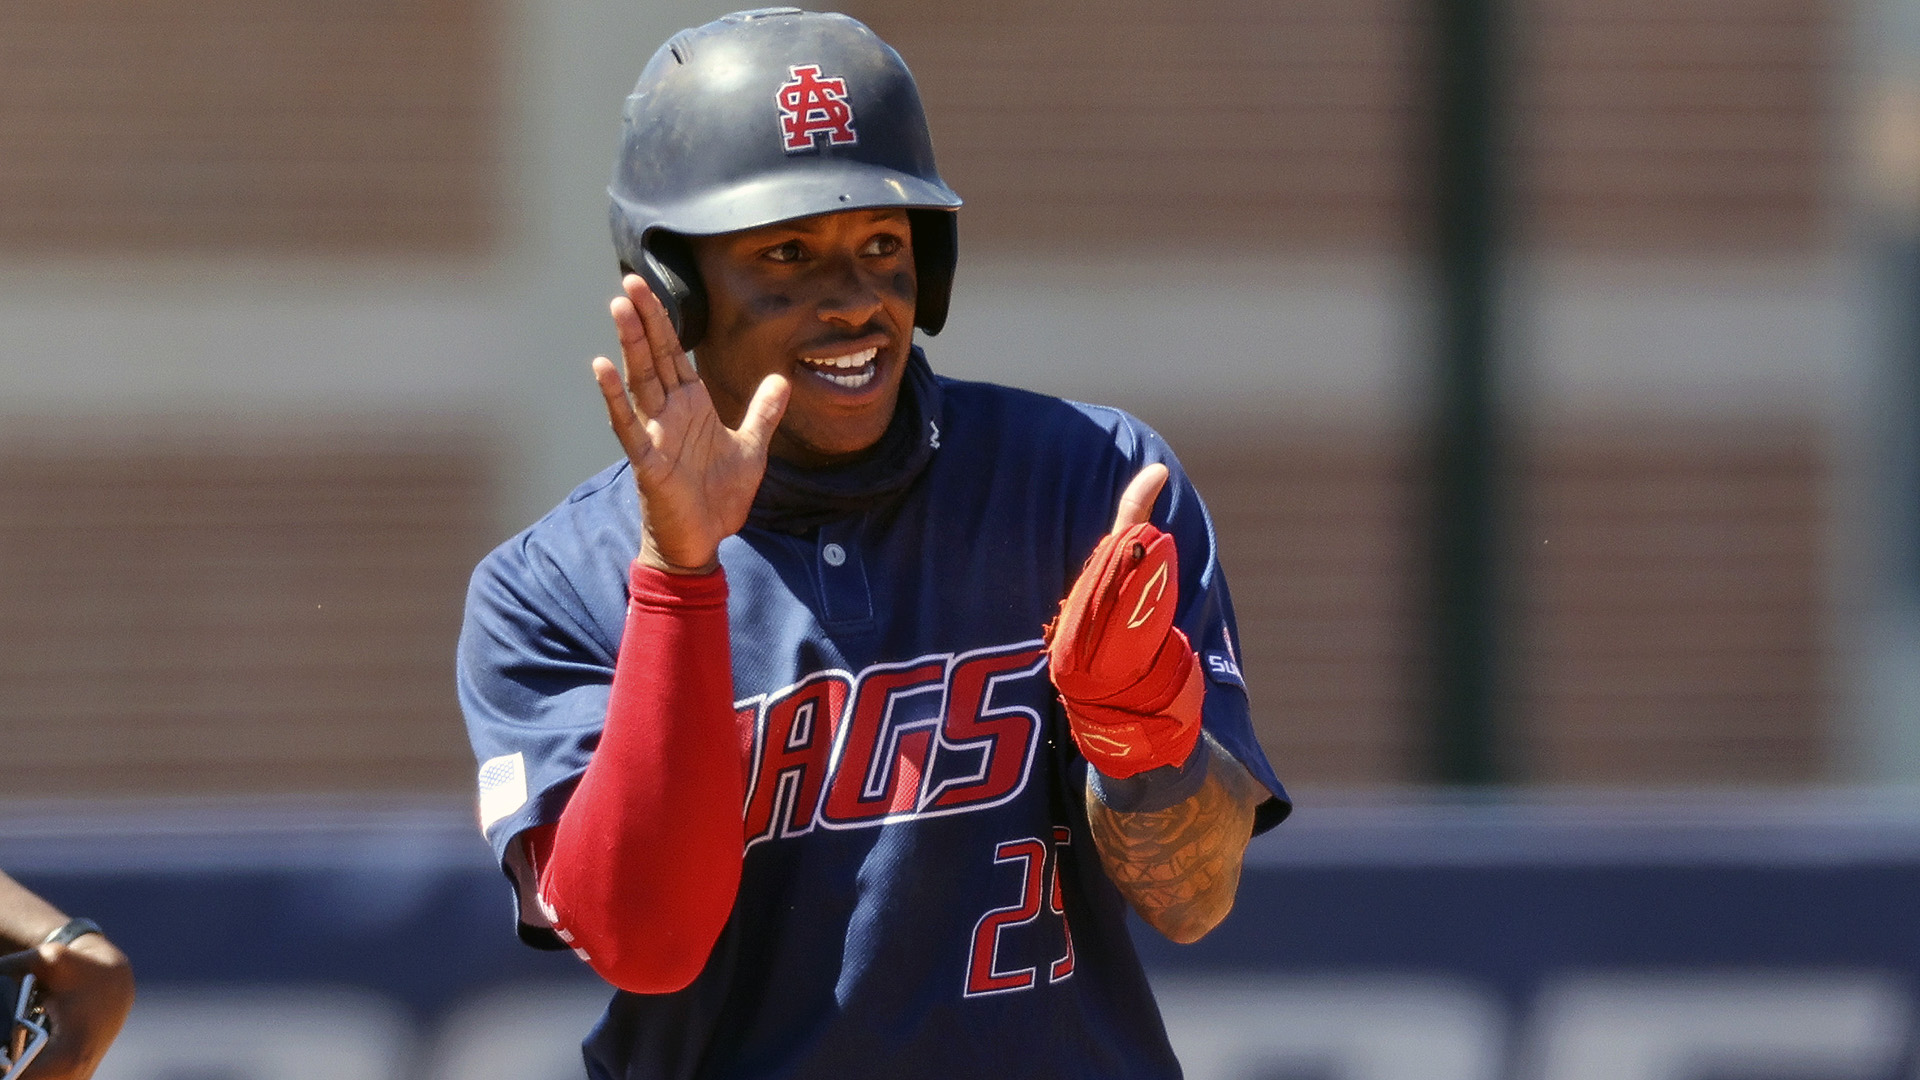 LISTEN: Michael Sandle reacts to being drafted in the 10th round by the Houston Astros